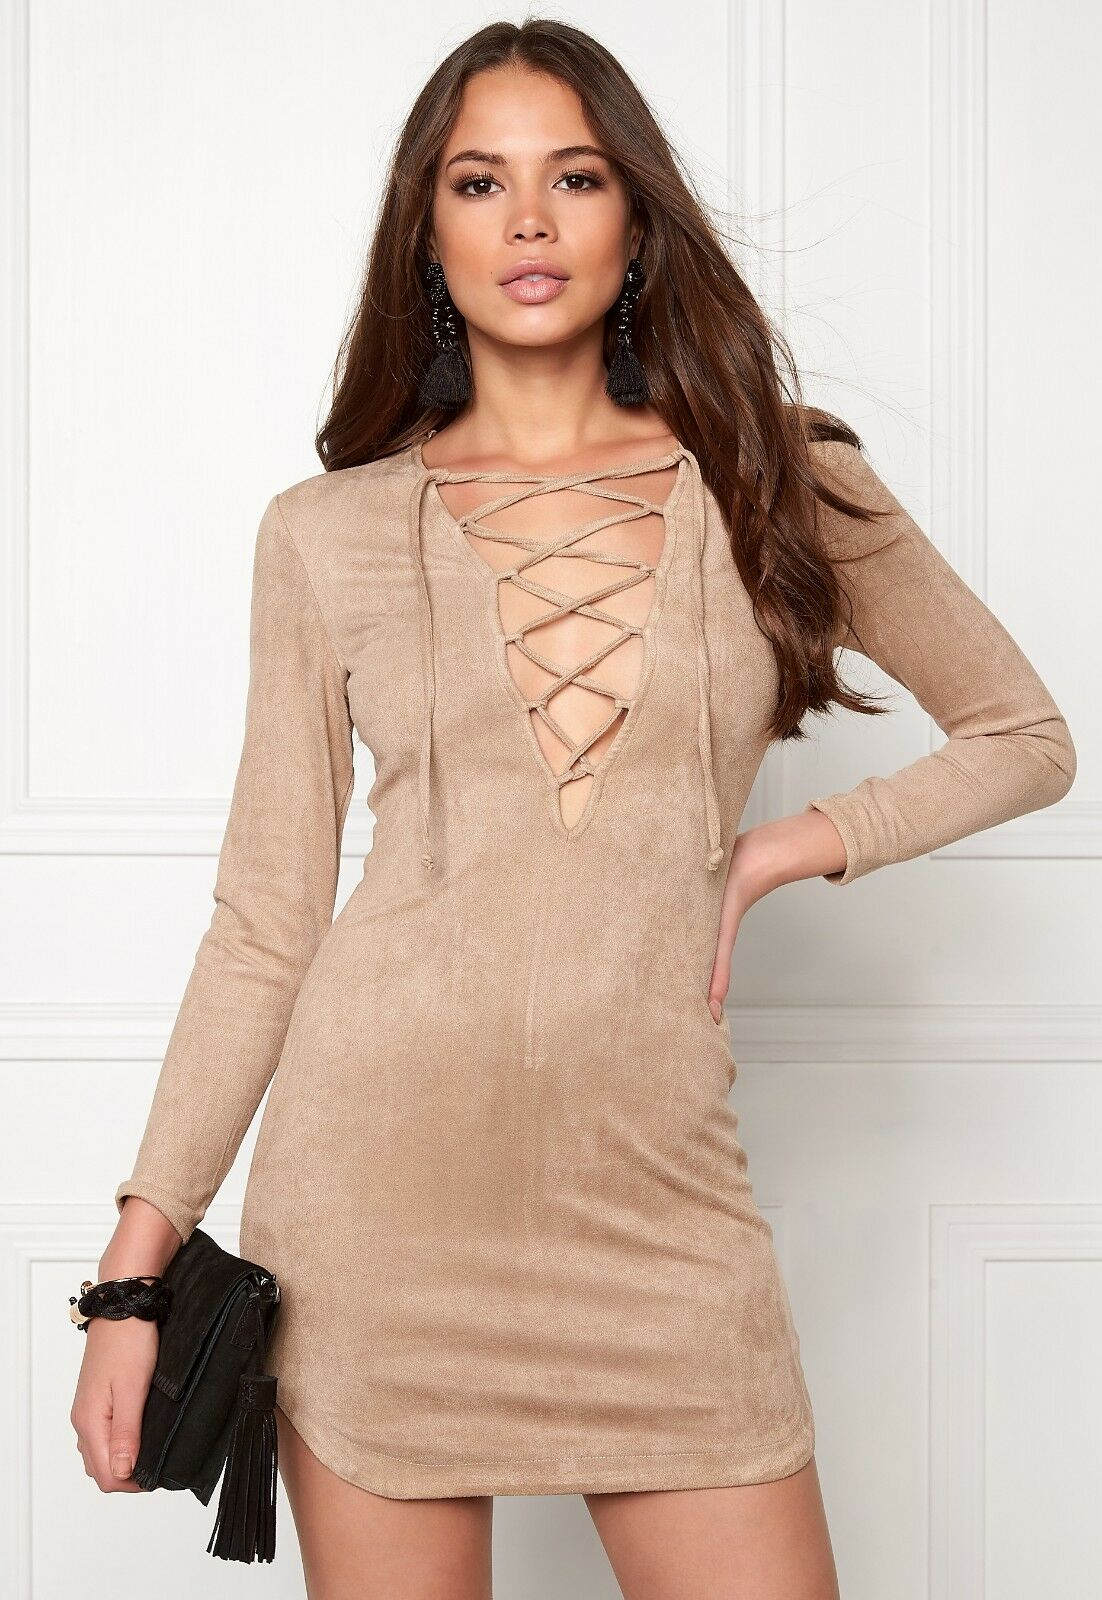 Wyldr Pretty Tied Up Cream Suede Dress Size S rrp  DH088 SS 28